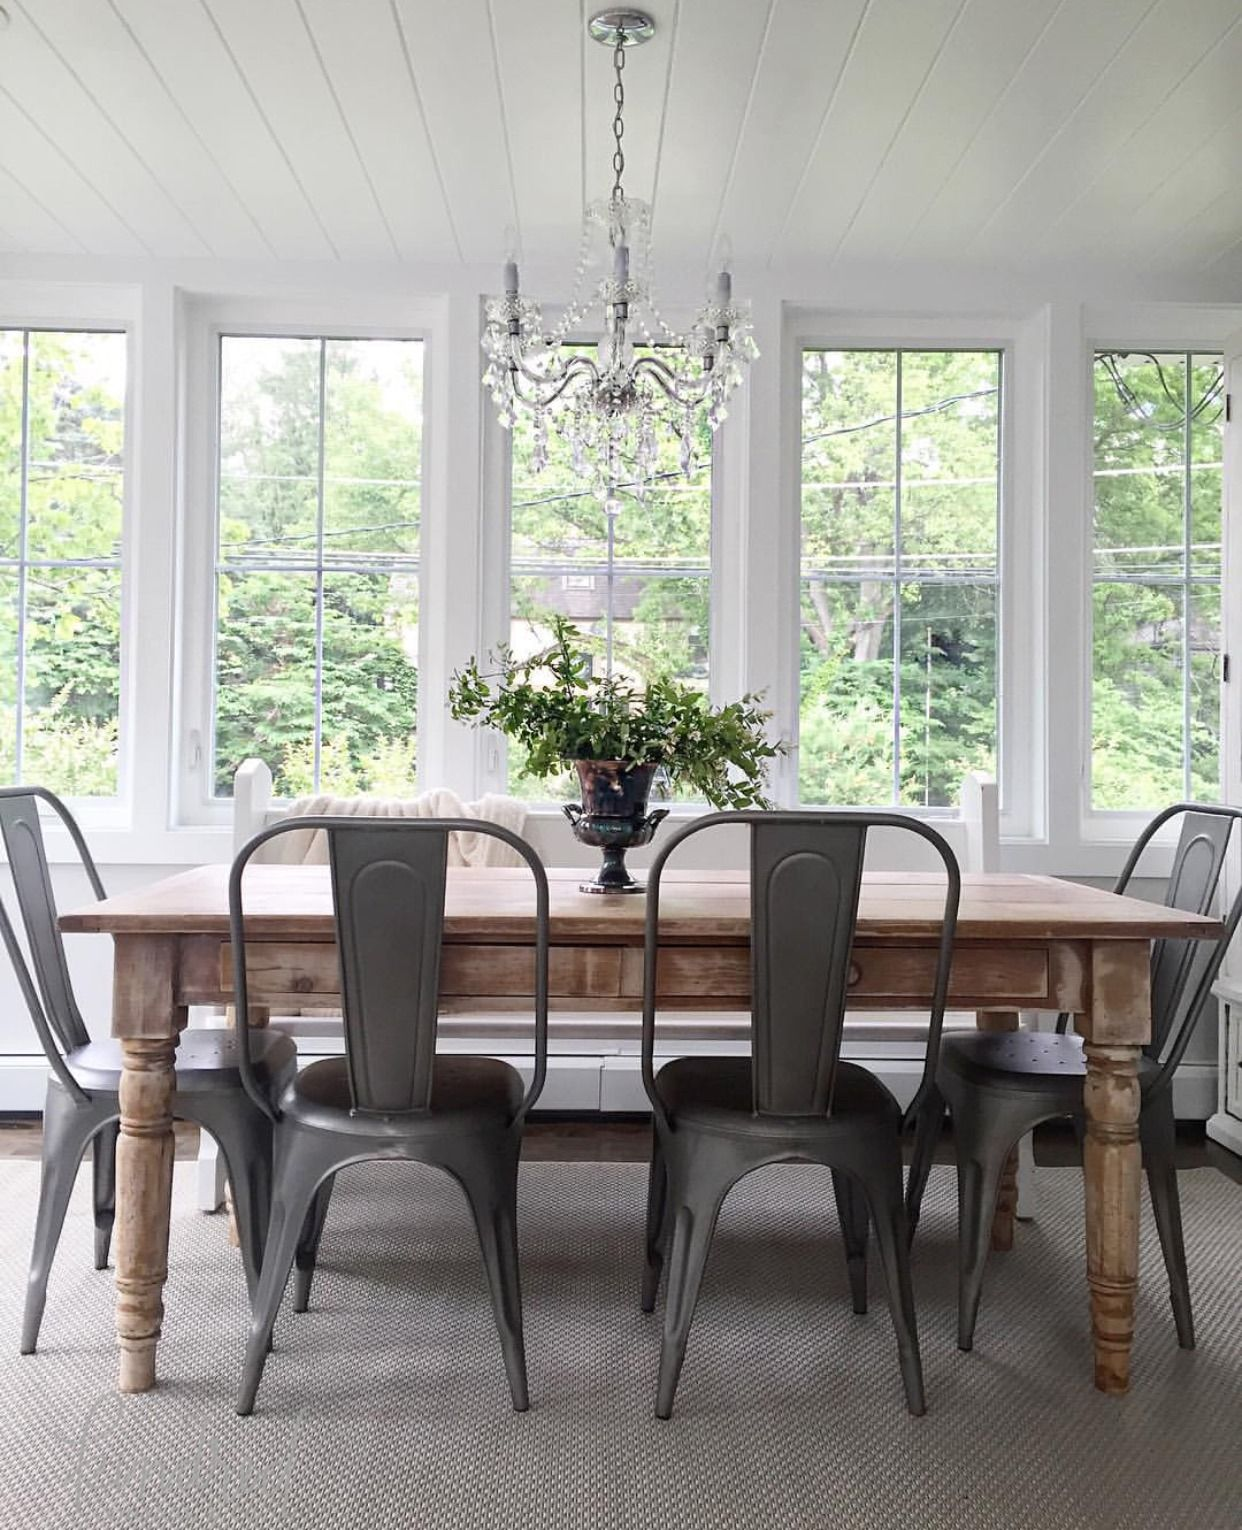 Kindred Vintage Farmhouse Style Metal Chairs Dining Room